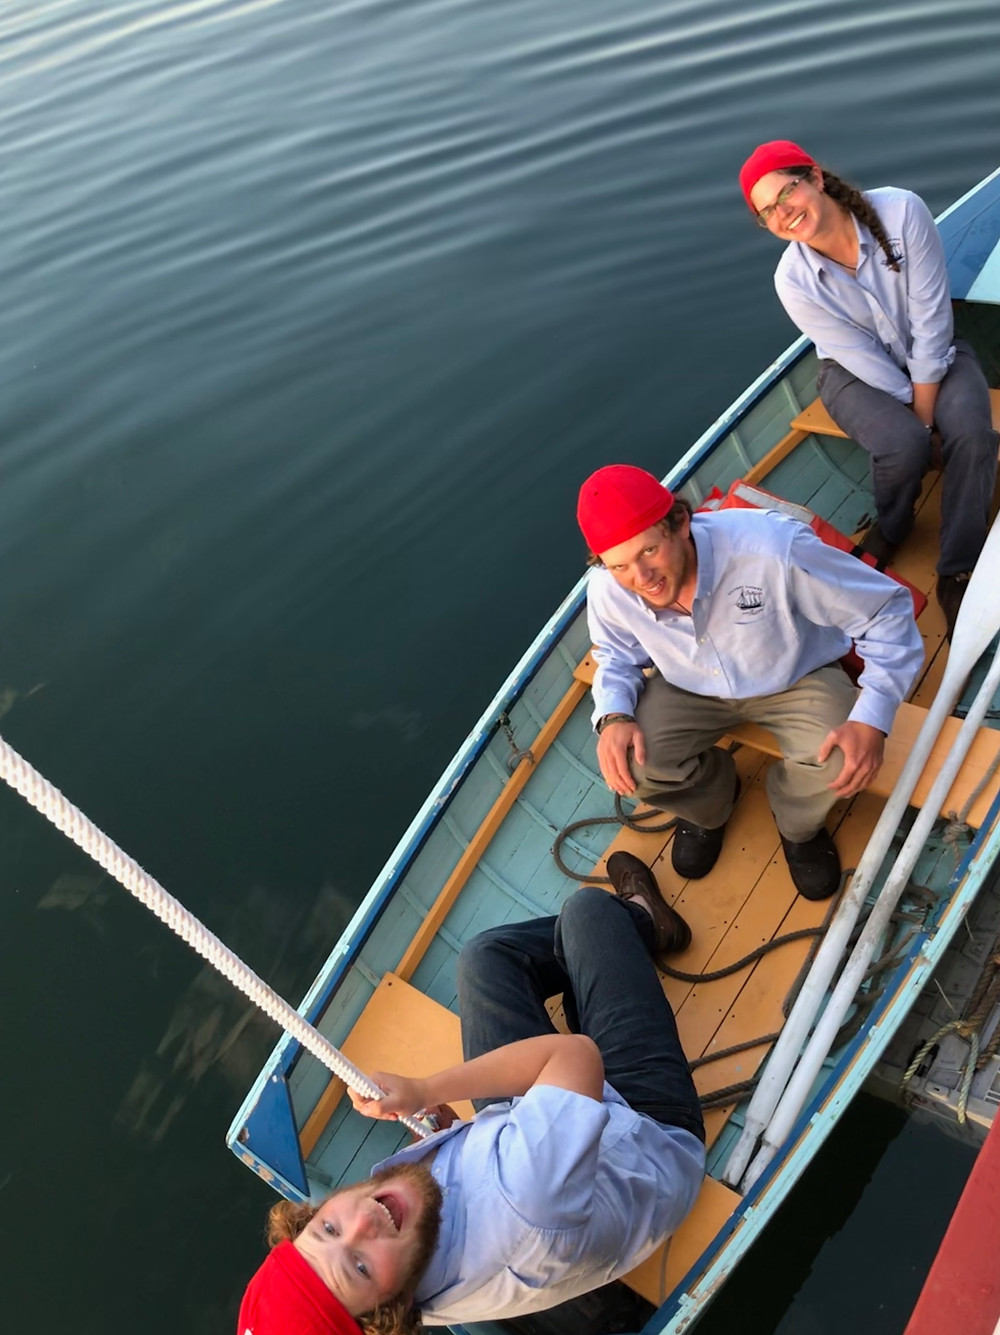 Victory chimes crew in smallboat